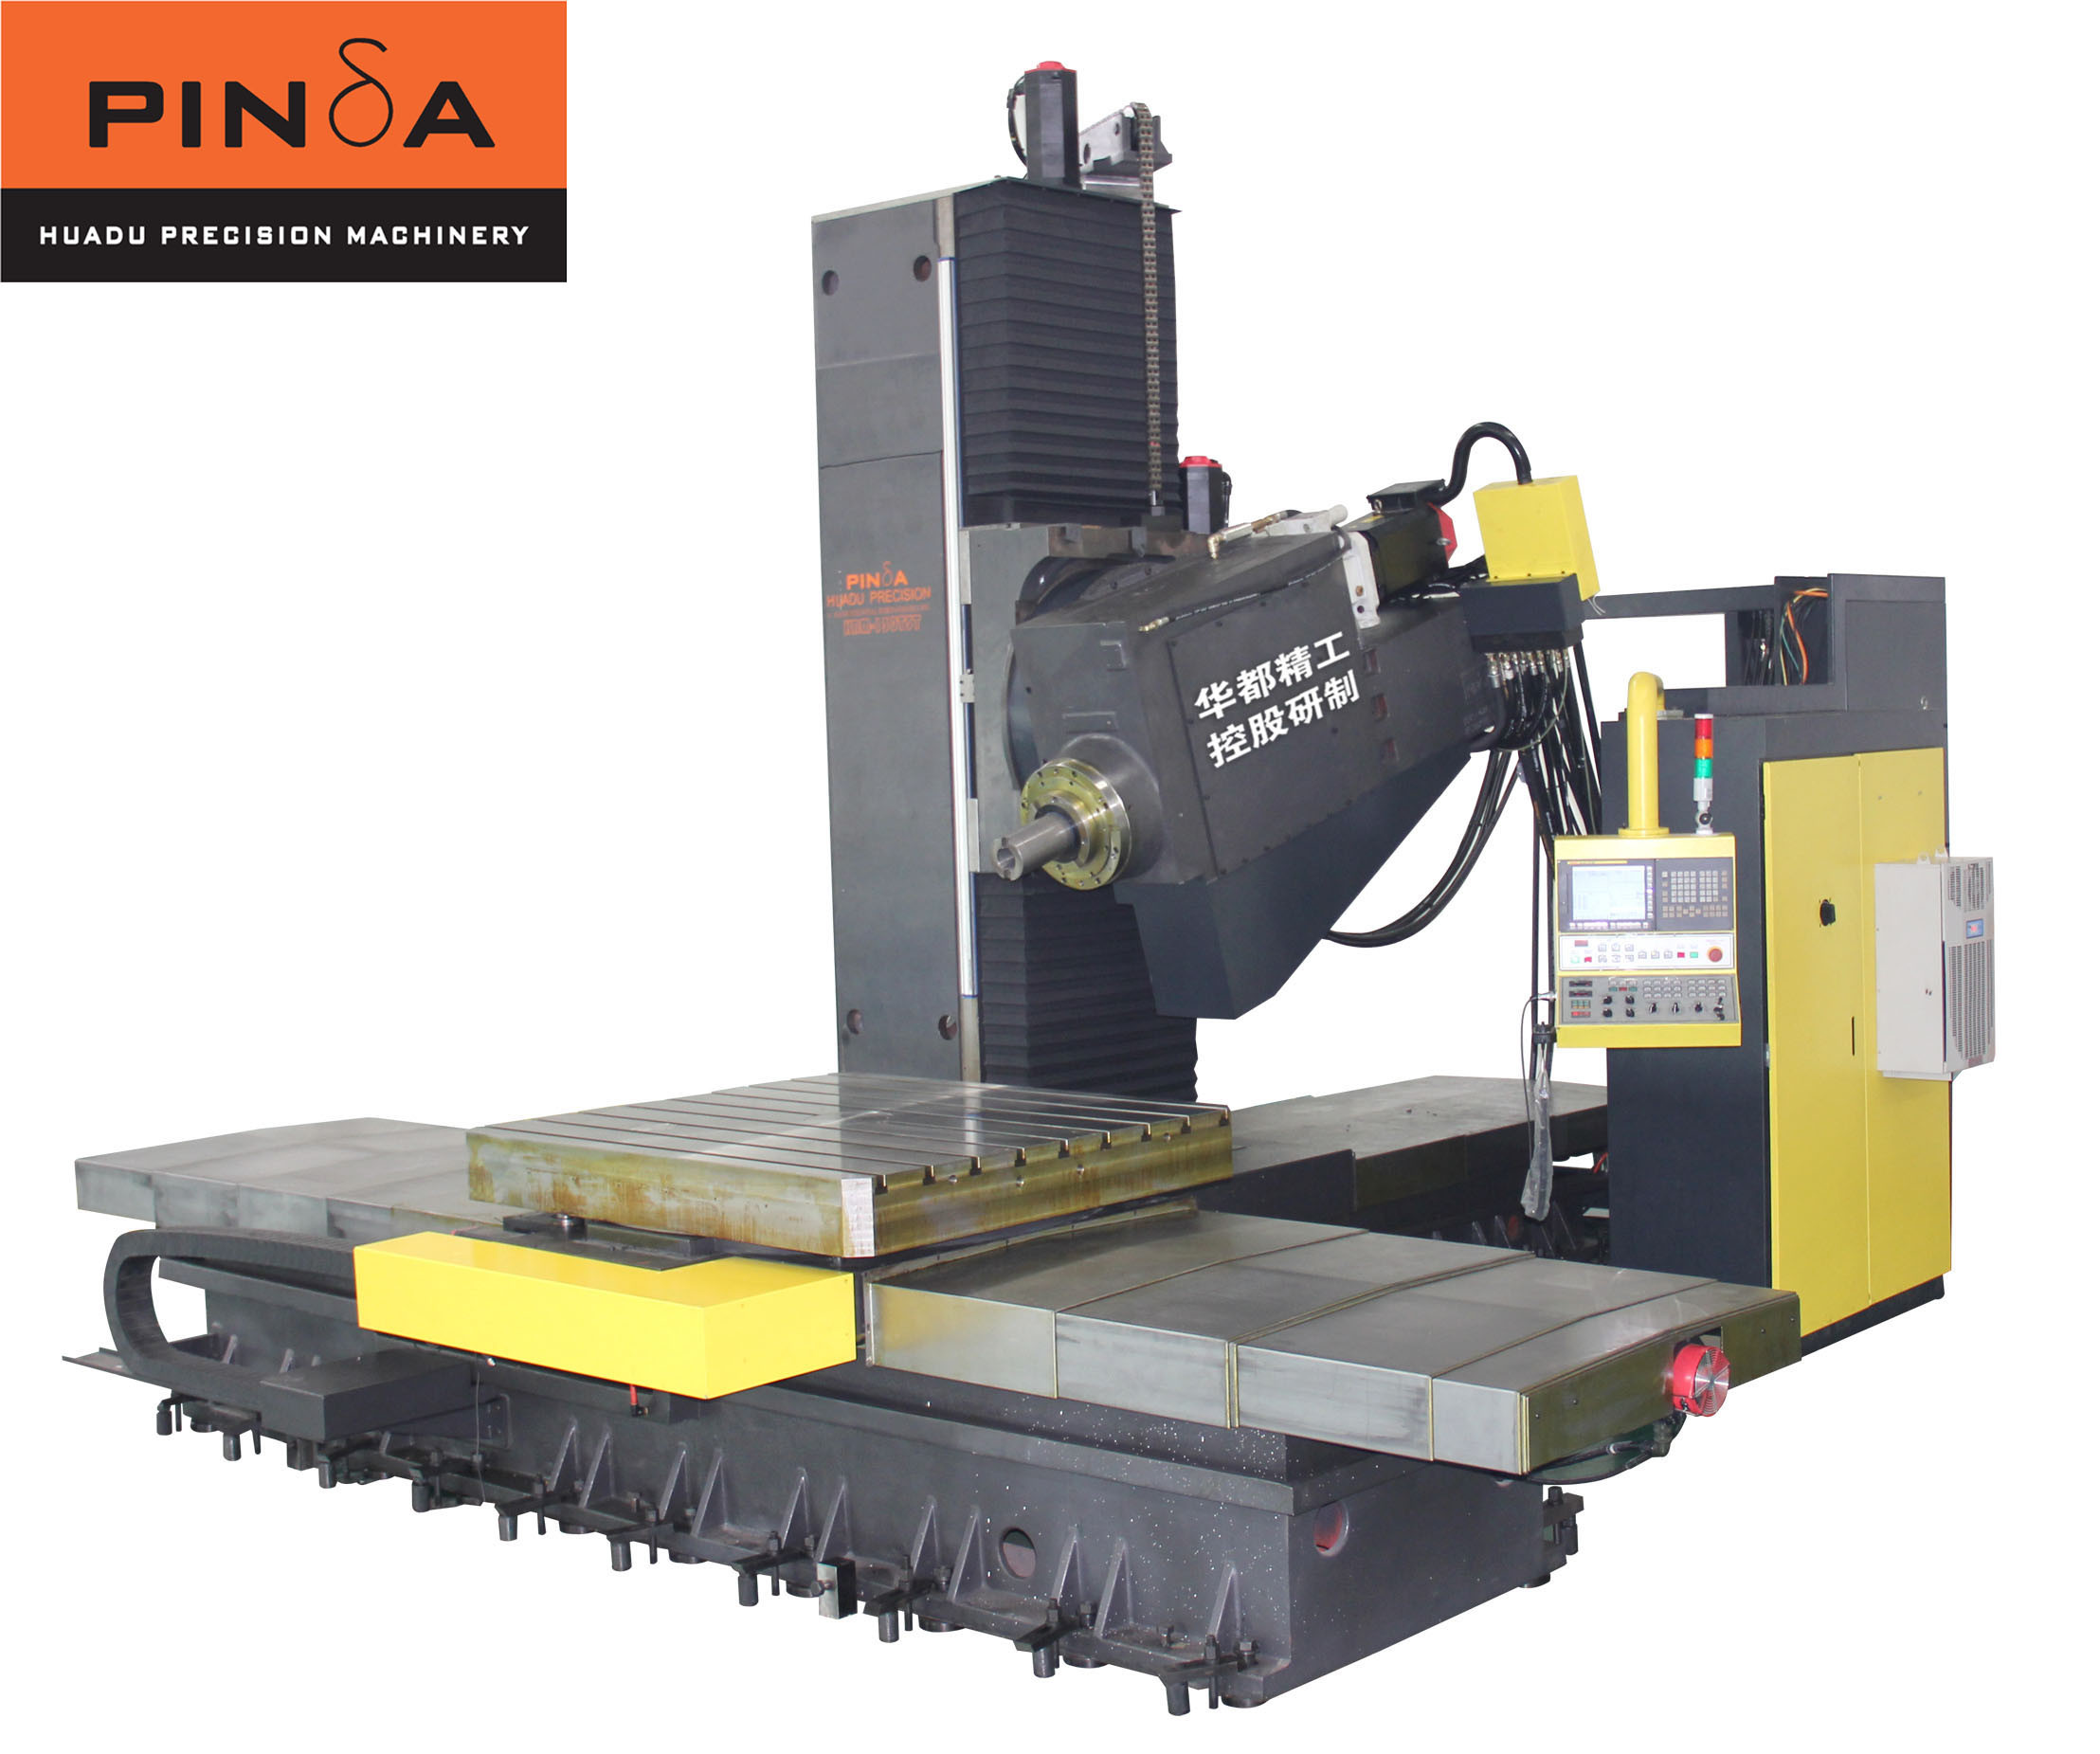 The First CNC Six Axis Horizontal Boring and Milling Machining Center of Chinese R&D